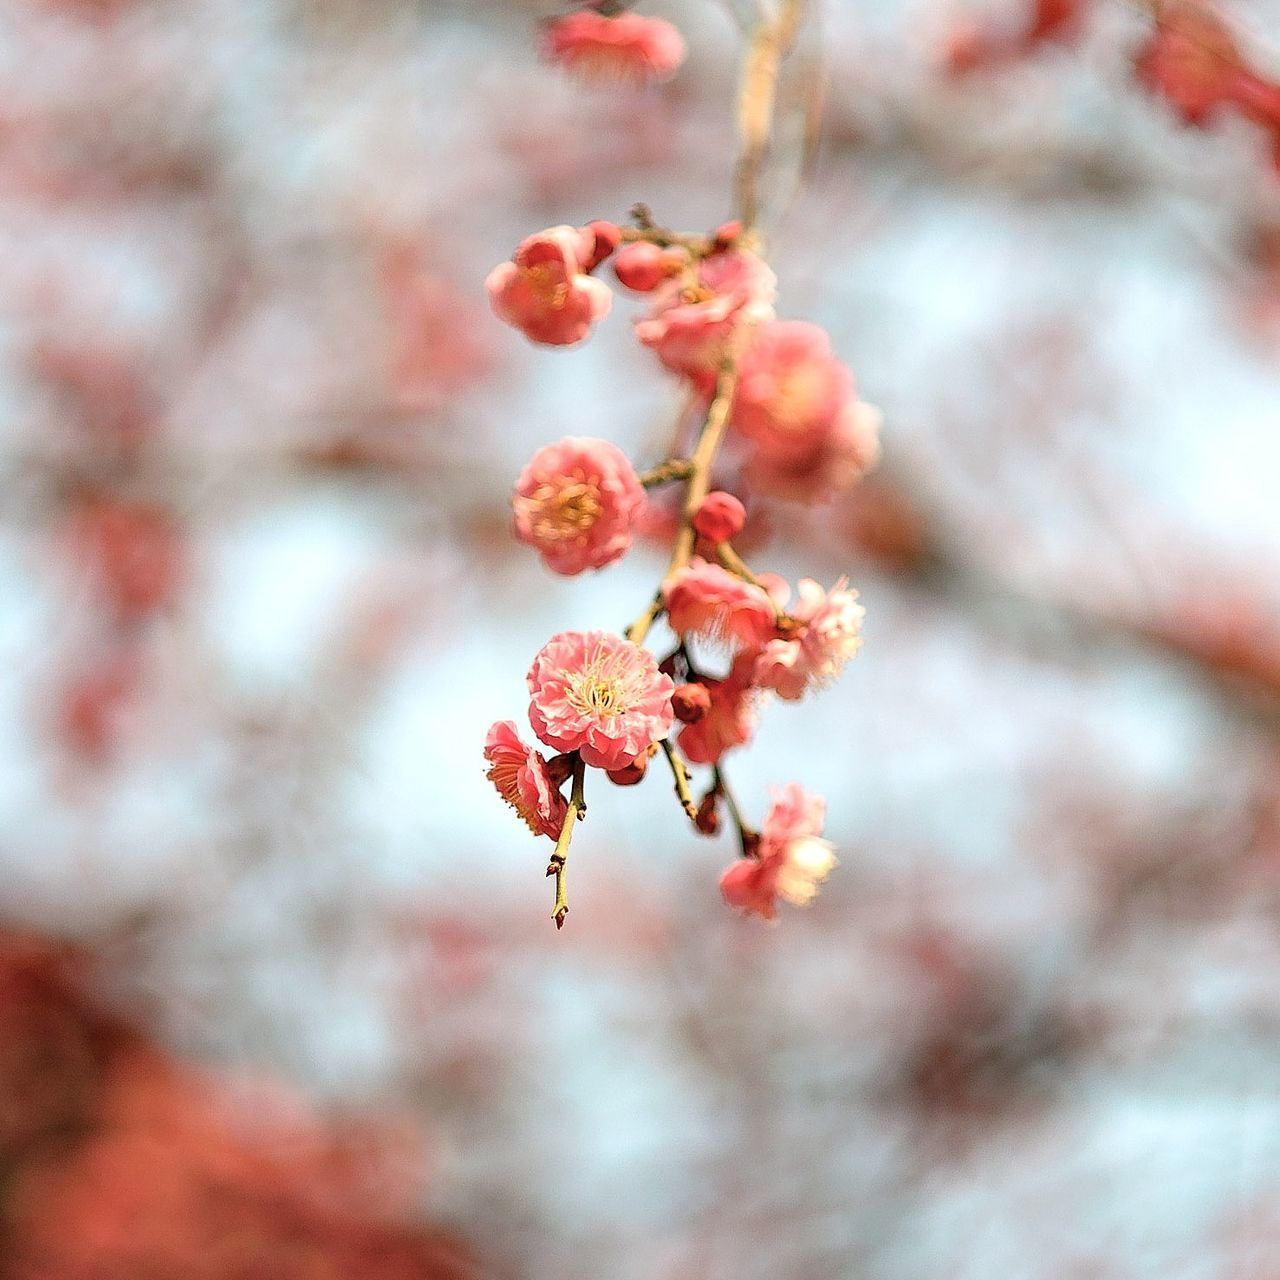 Nature Beauty In Nature Close-up Plant Flower Freshness Cold Temperature Blossom Flower Head Snapshot Feeling Inspired Silence Sunlight Outdoors Nature_collection Nature